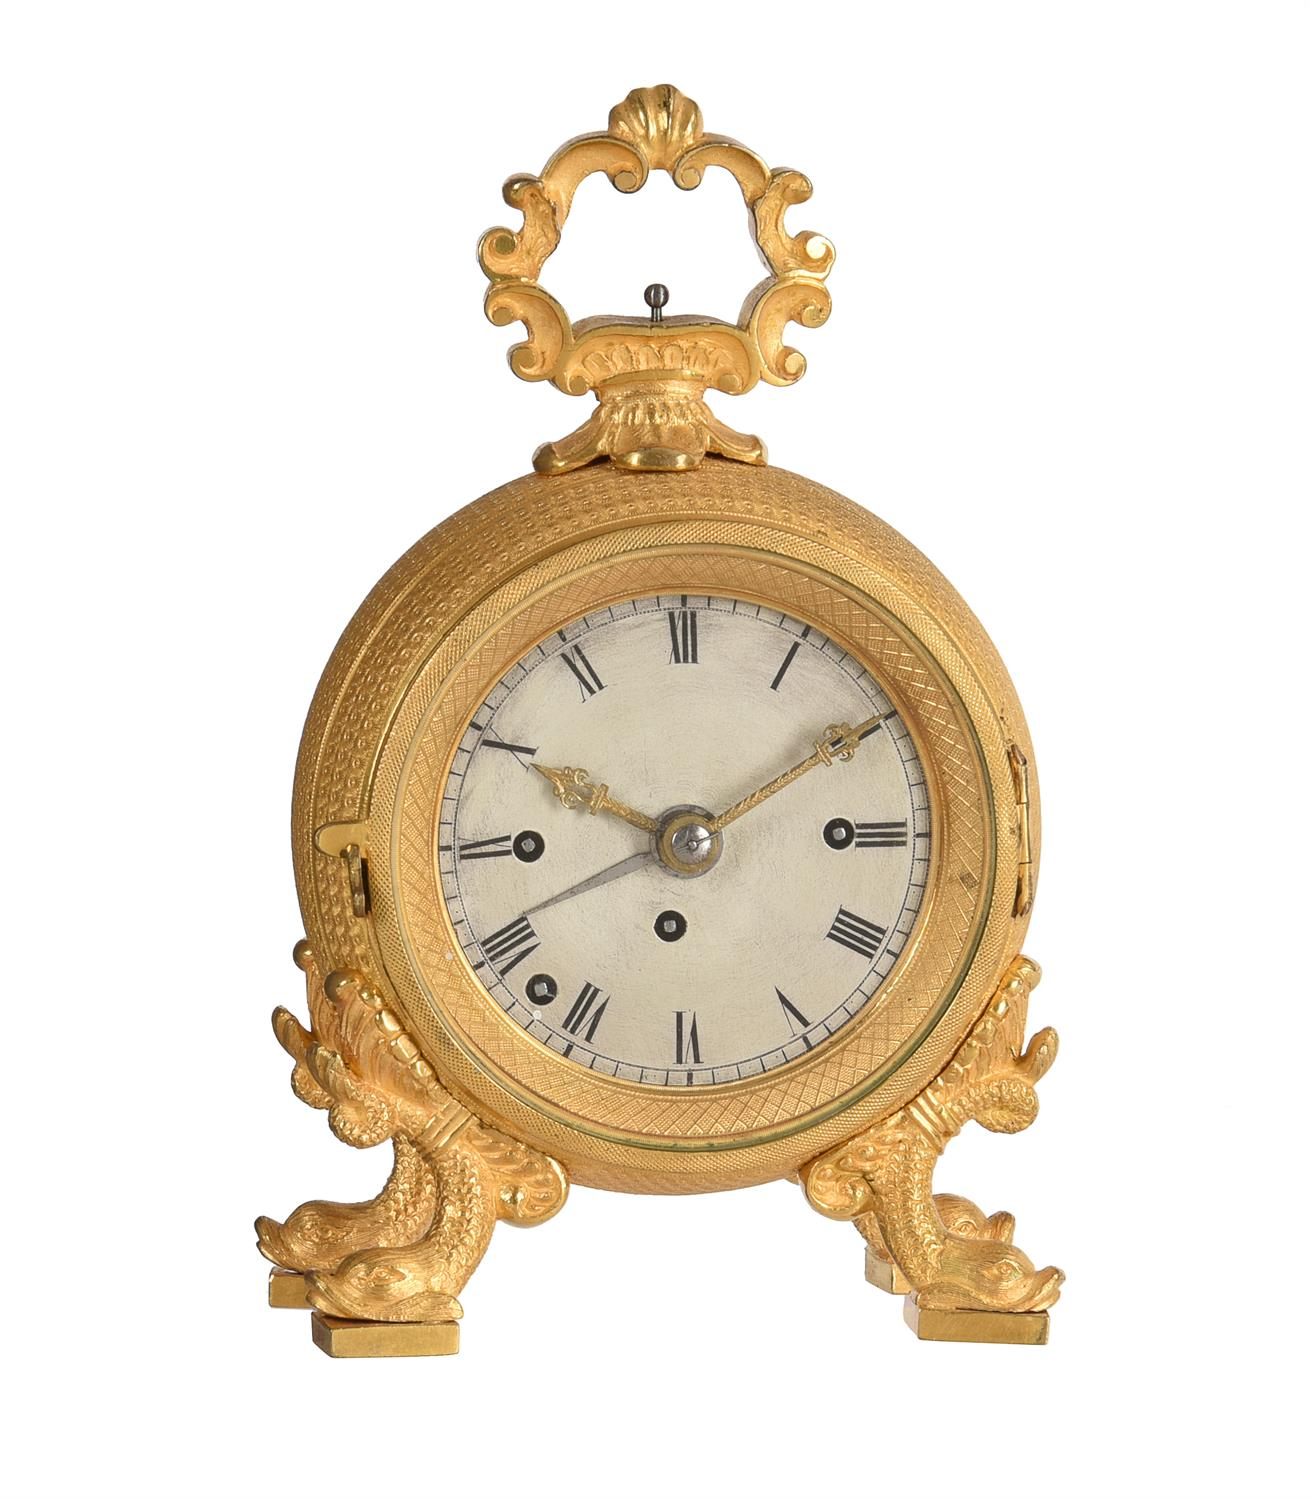 An Austrian ormolu cased grande-sonnerie striking 'Pendule d'Officier' with alarm